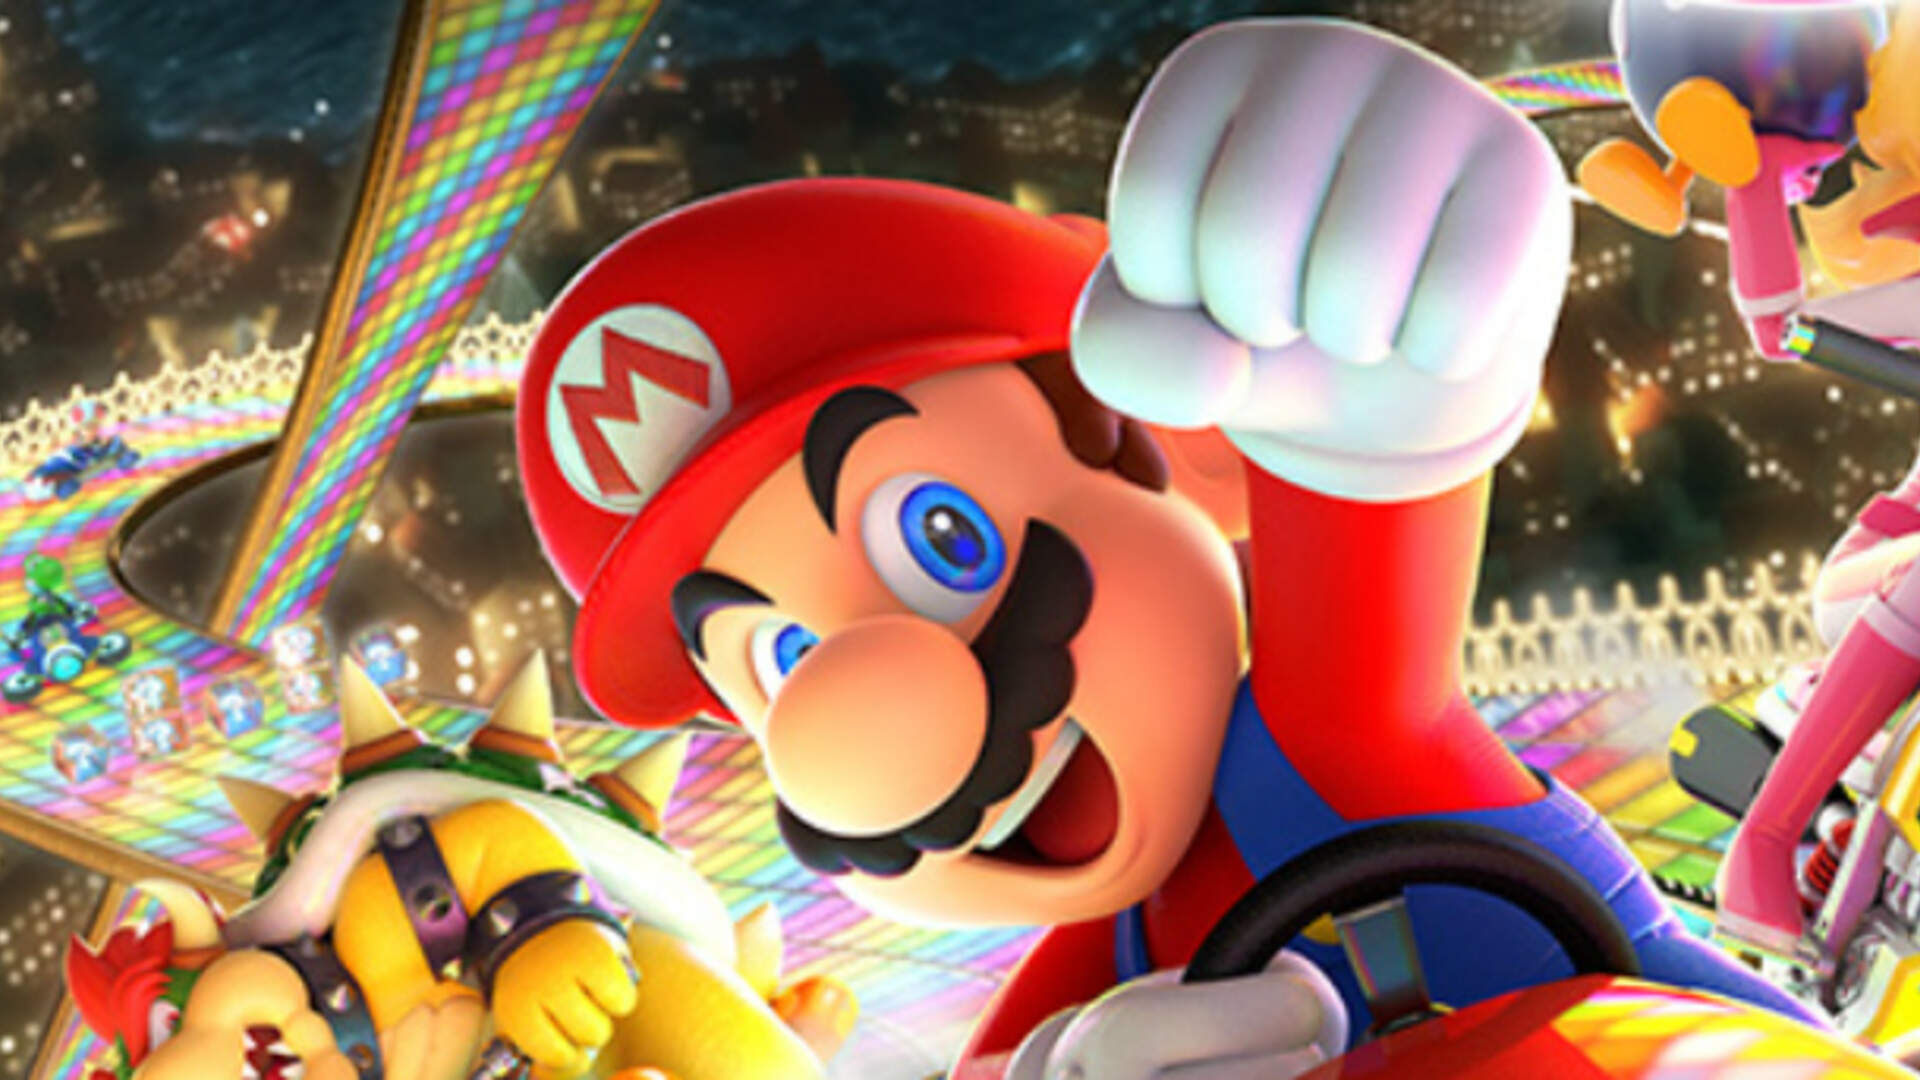 Mario Kart 8 Deluxe Is the Fastest-Selling Mario Kart in US History